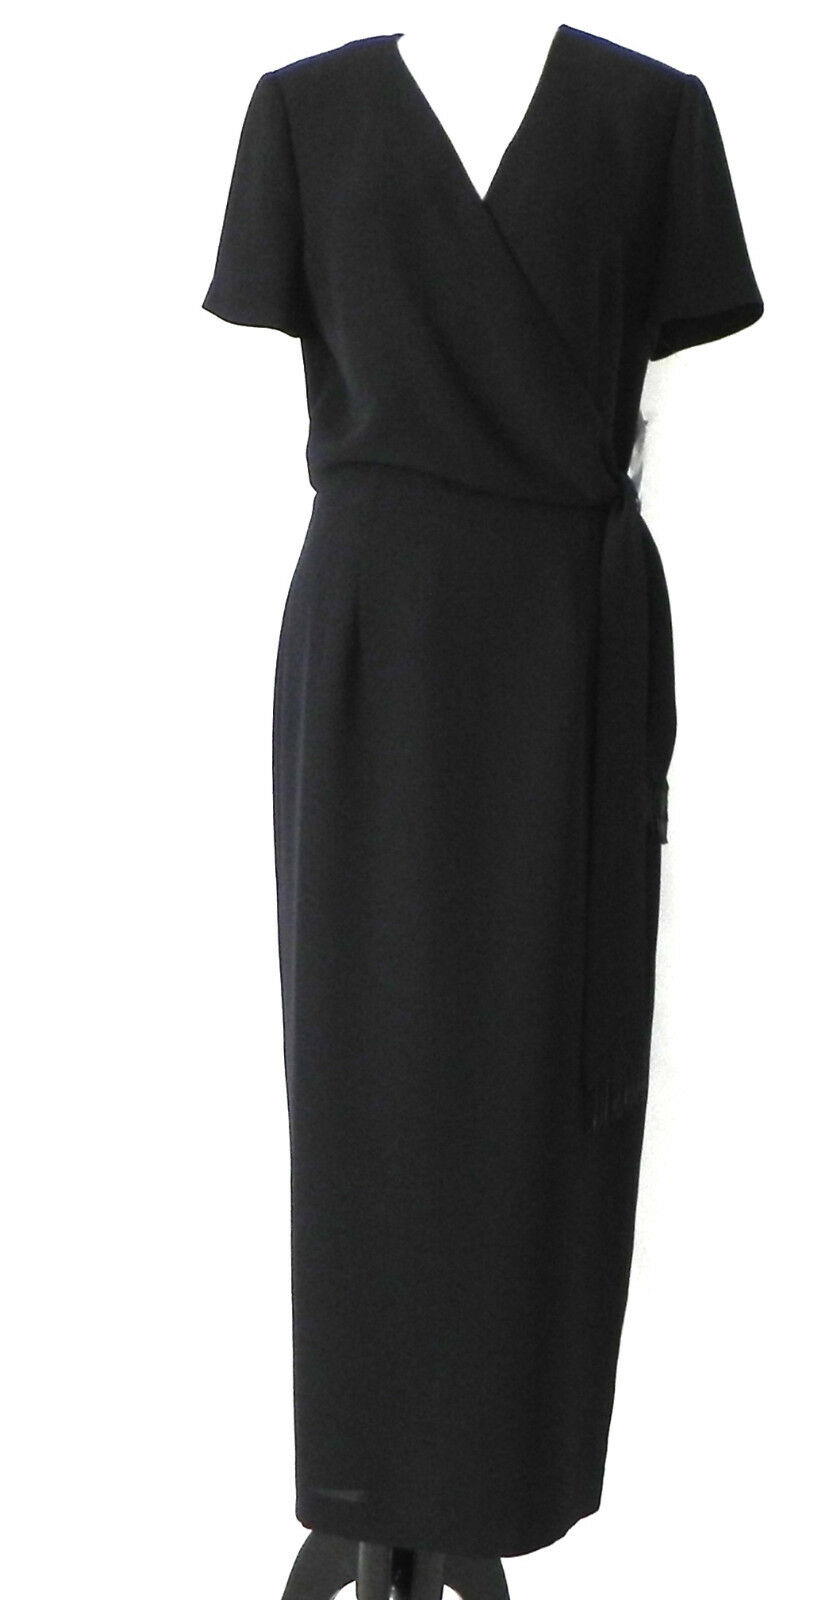 Maggy London Dress schwarz Short Sleeve Maxi Faux Wrap Top Größe 10